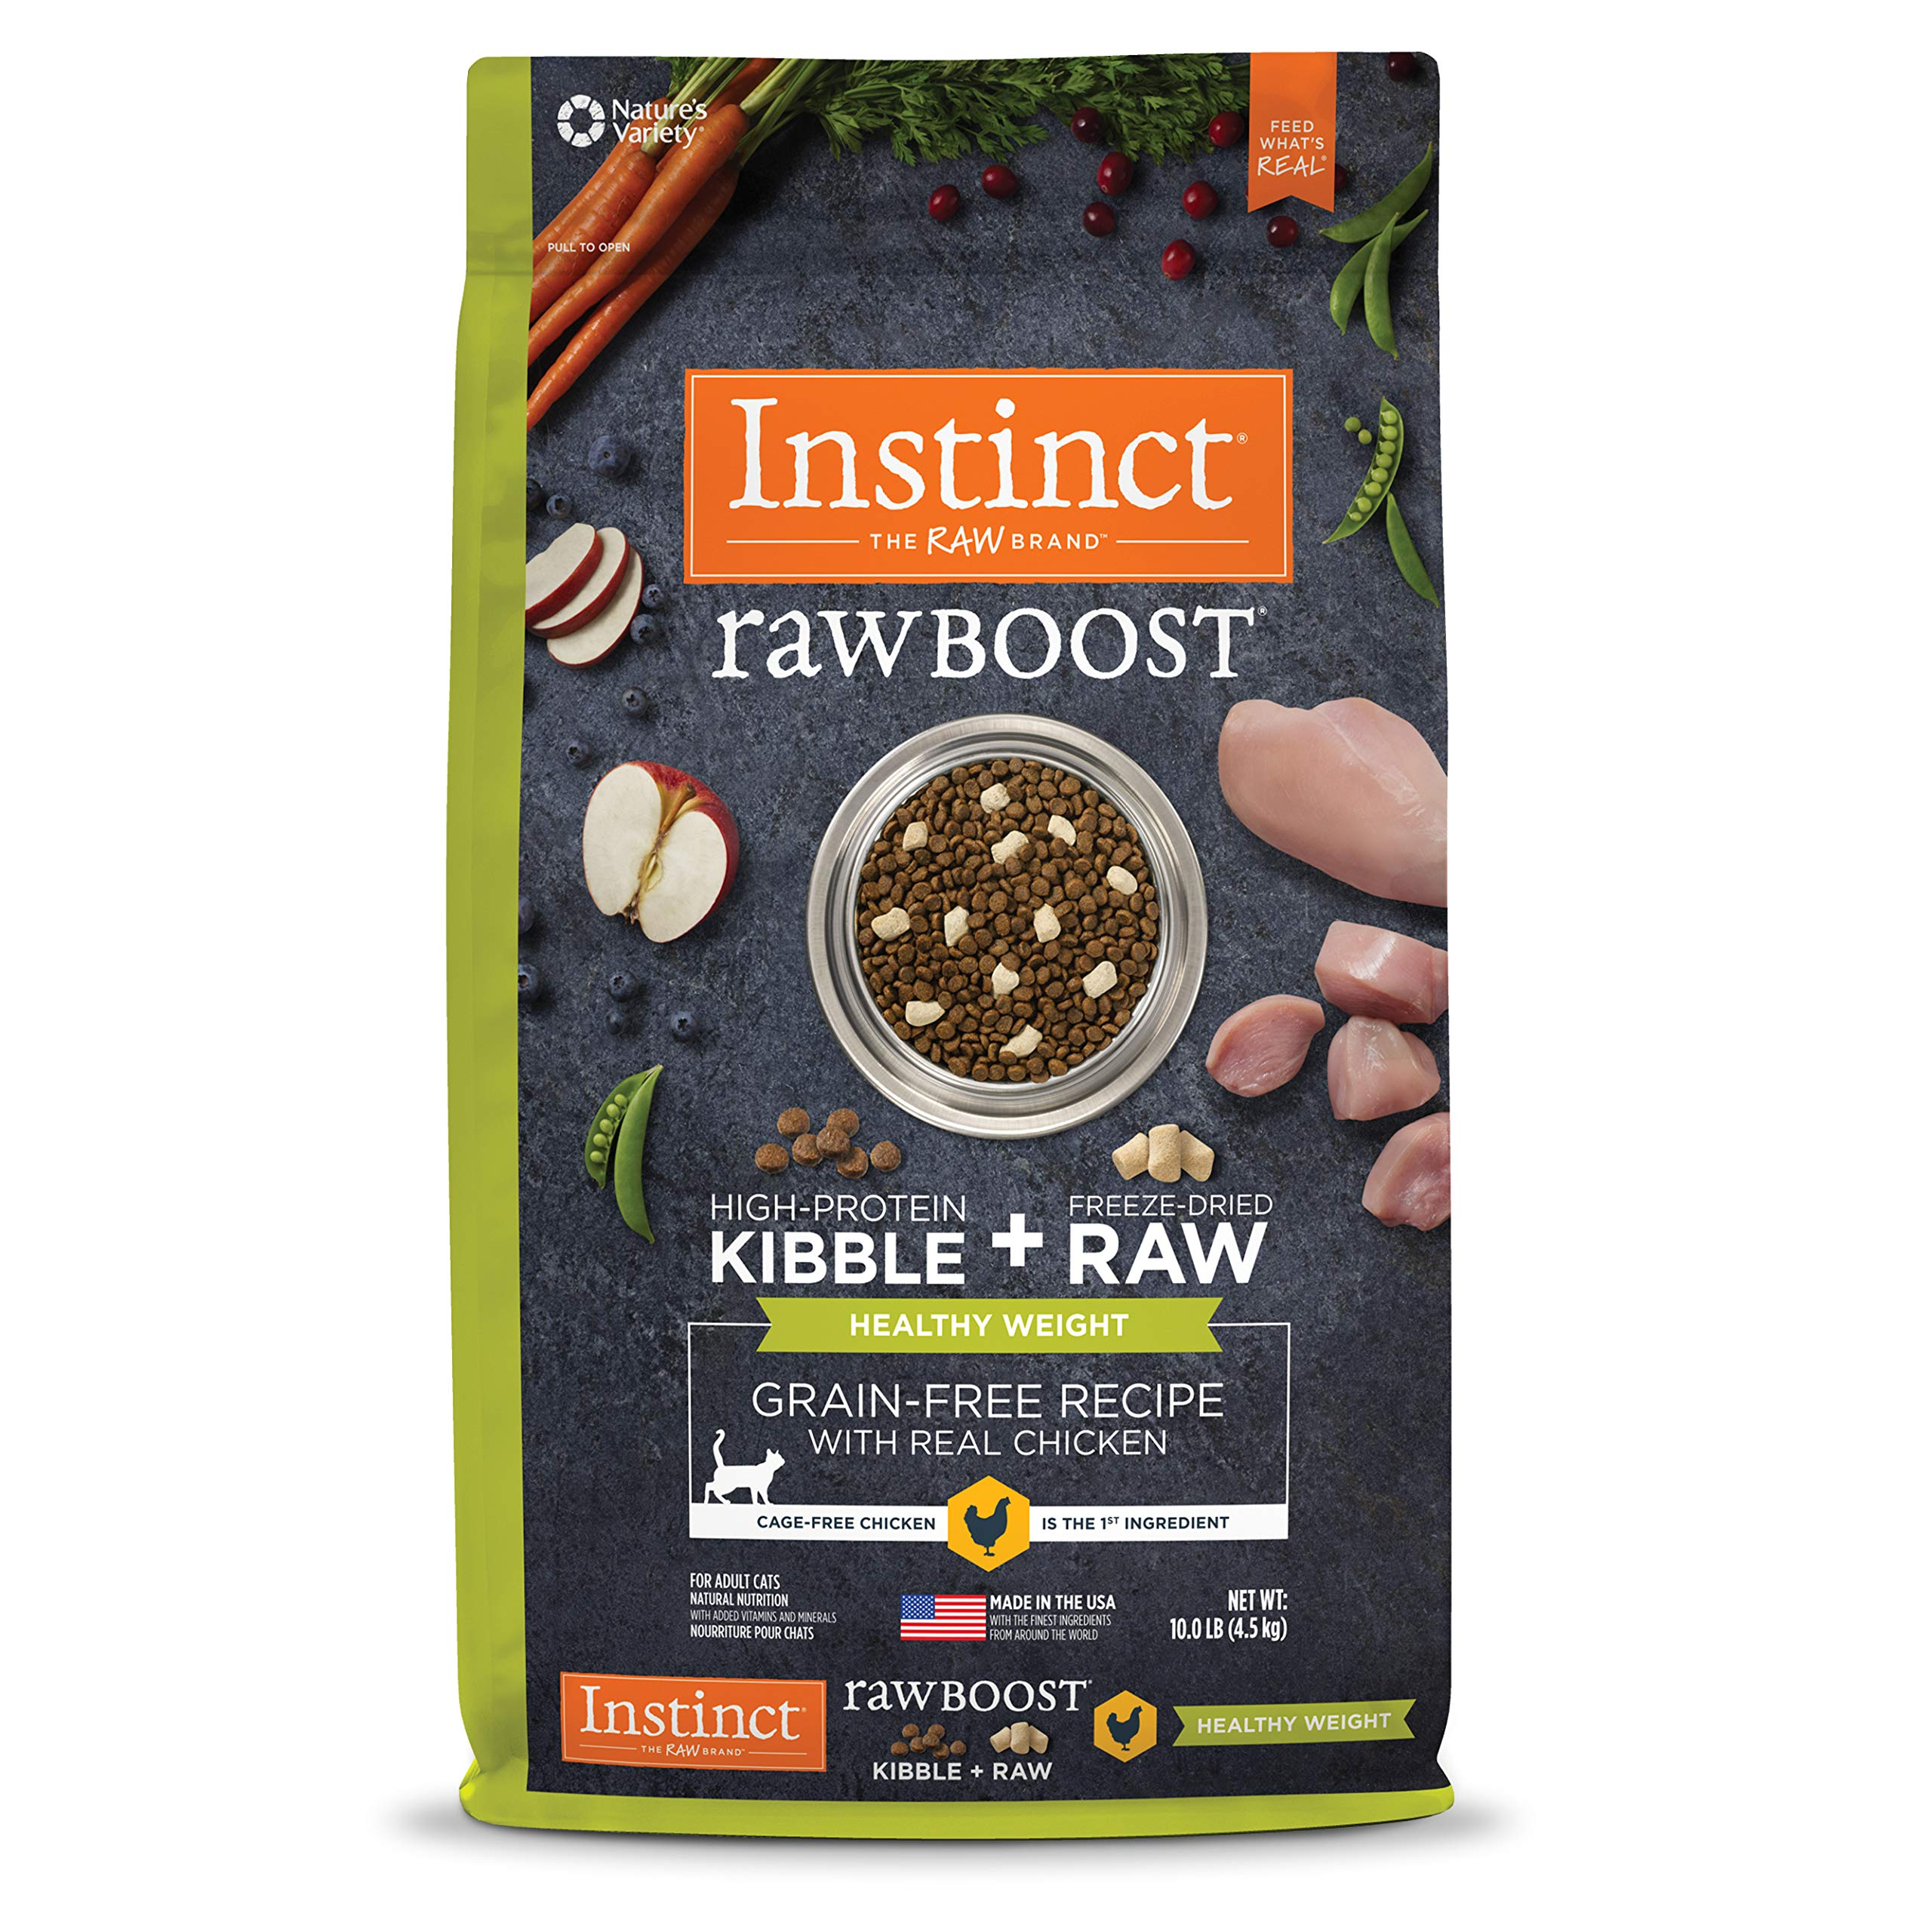 Instinct Raw Boost Healthy Weight Grain Free Recipe with Real Chicken Natural Dry Cat Food by Nature's Variety, 10 lb. Bag by Instinct